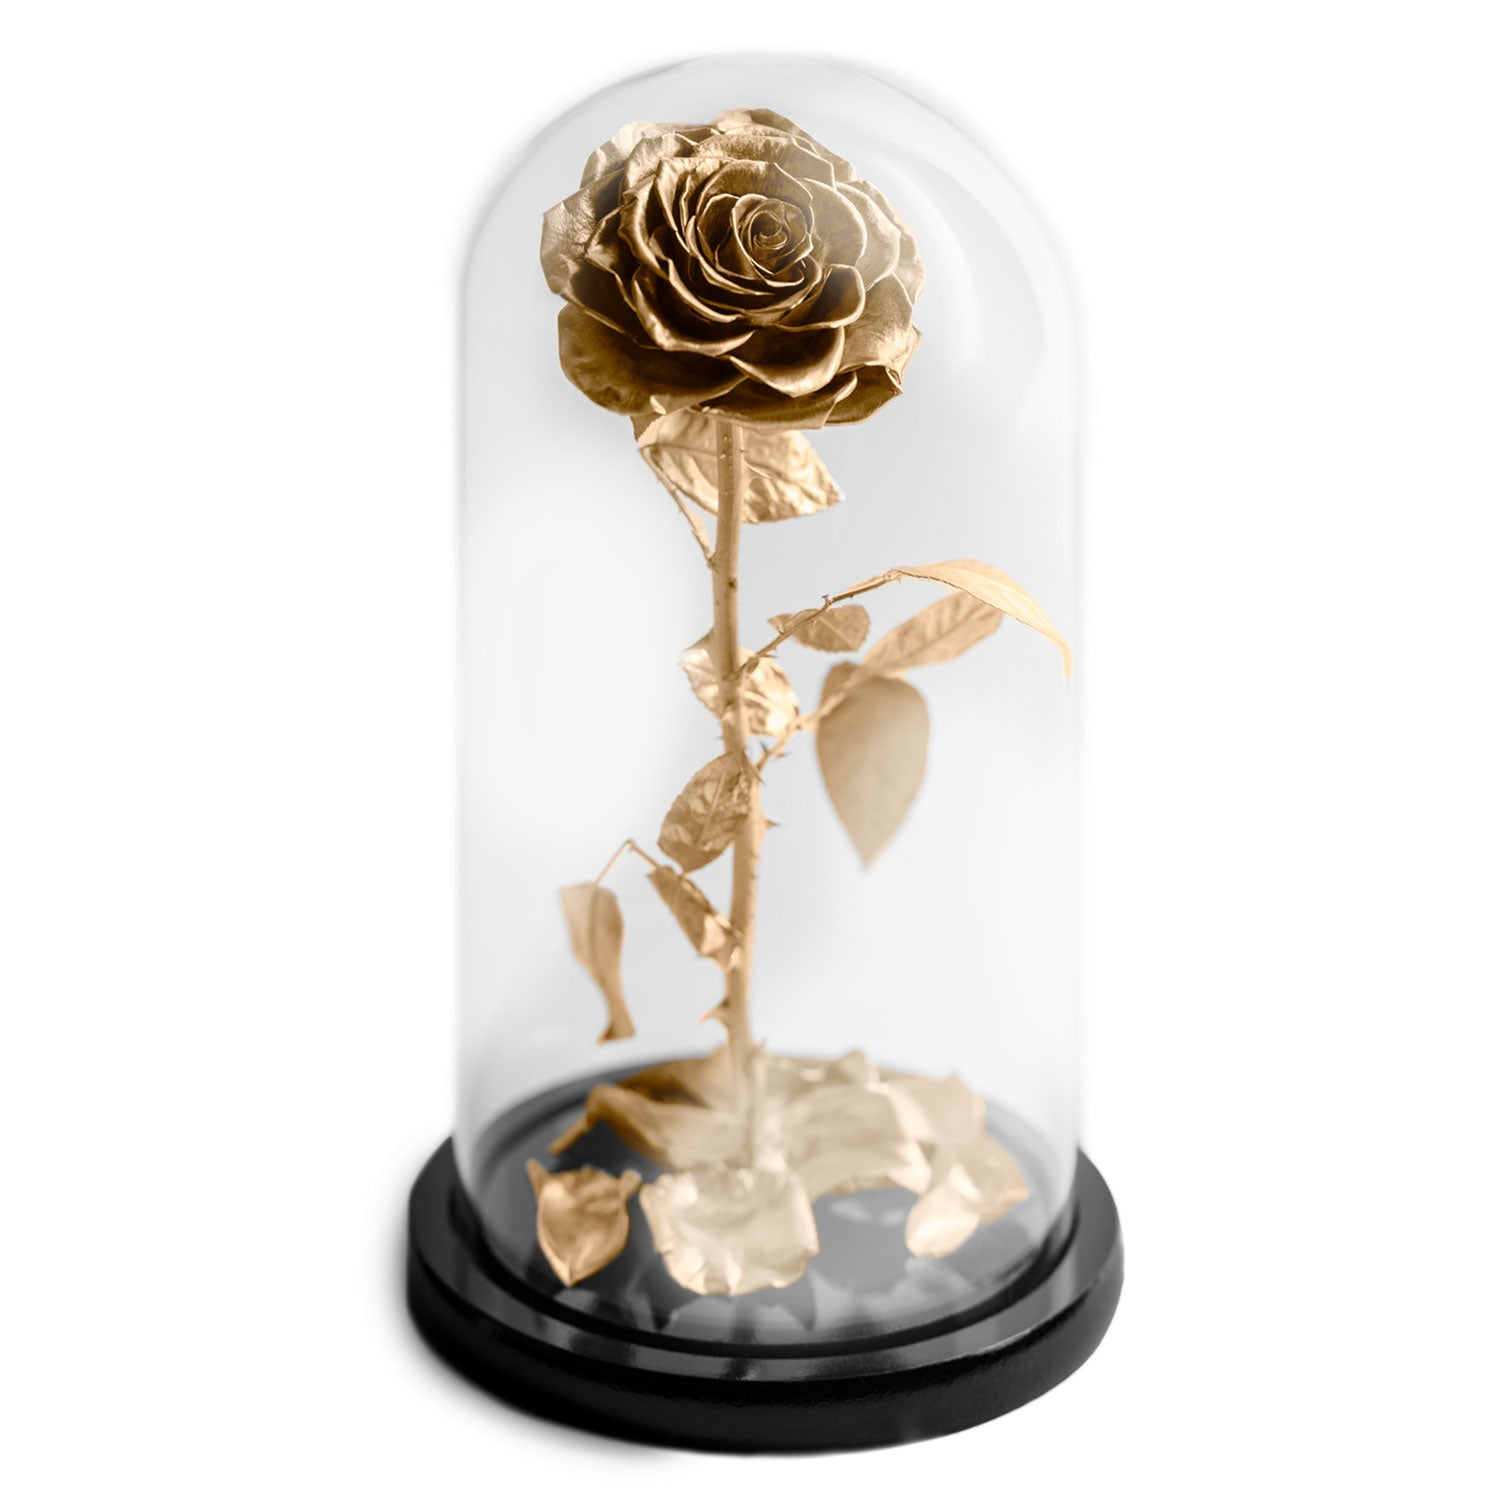 The Beauty and the Beast contains one gold eternity rose, picked at the point of perfection and preserved to last at least one year. Rose in glass dome